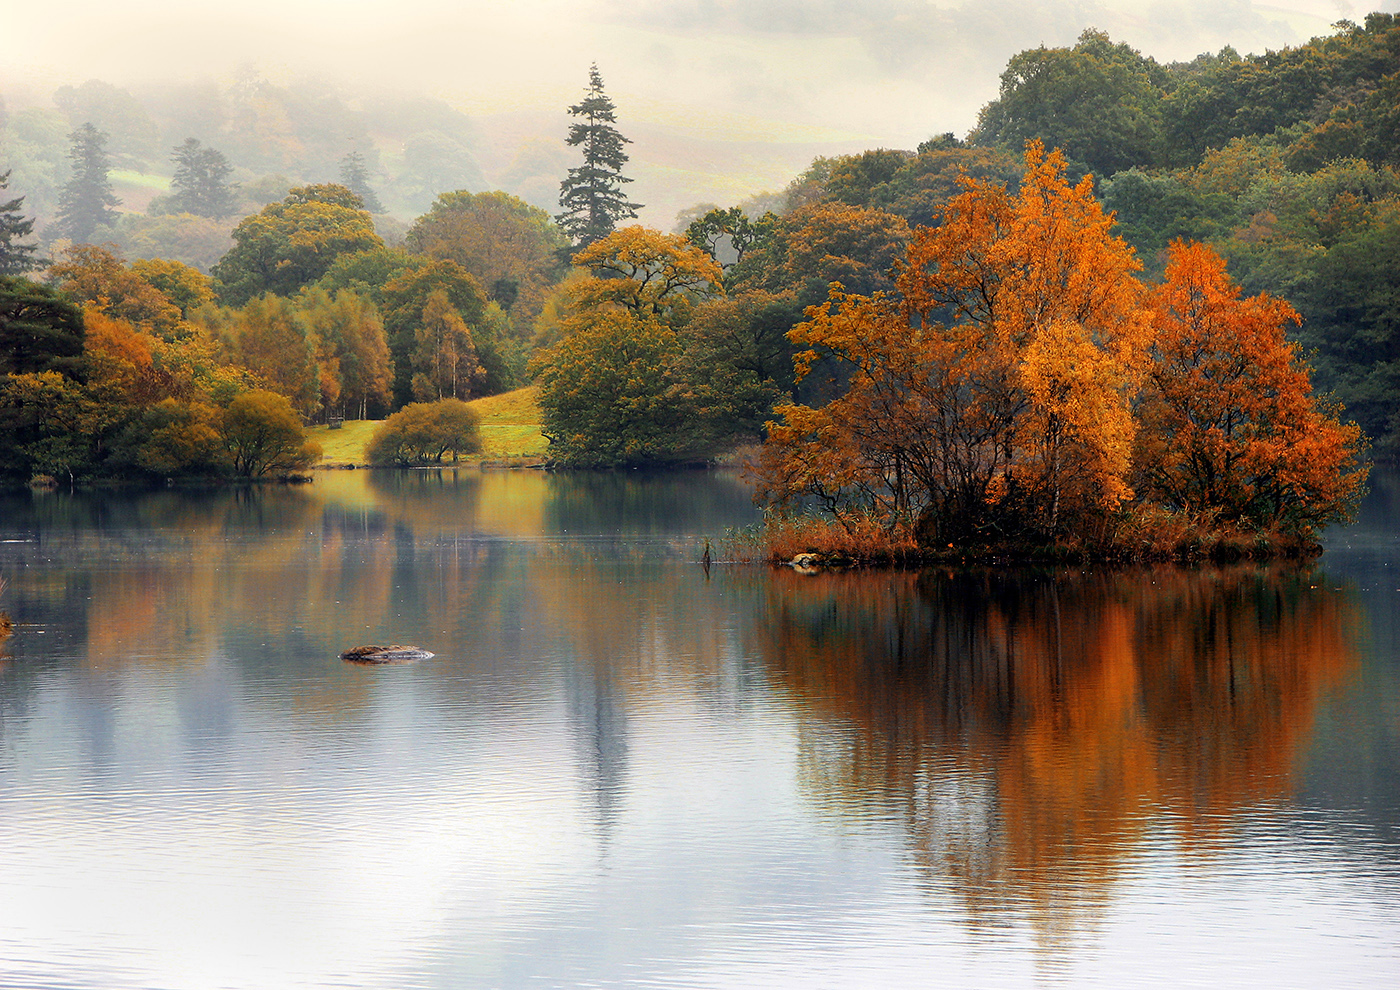 Newcomers Prints - Third - Rydal Water by Trevor Wright (November 2016)